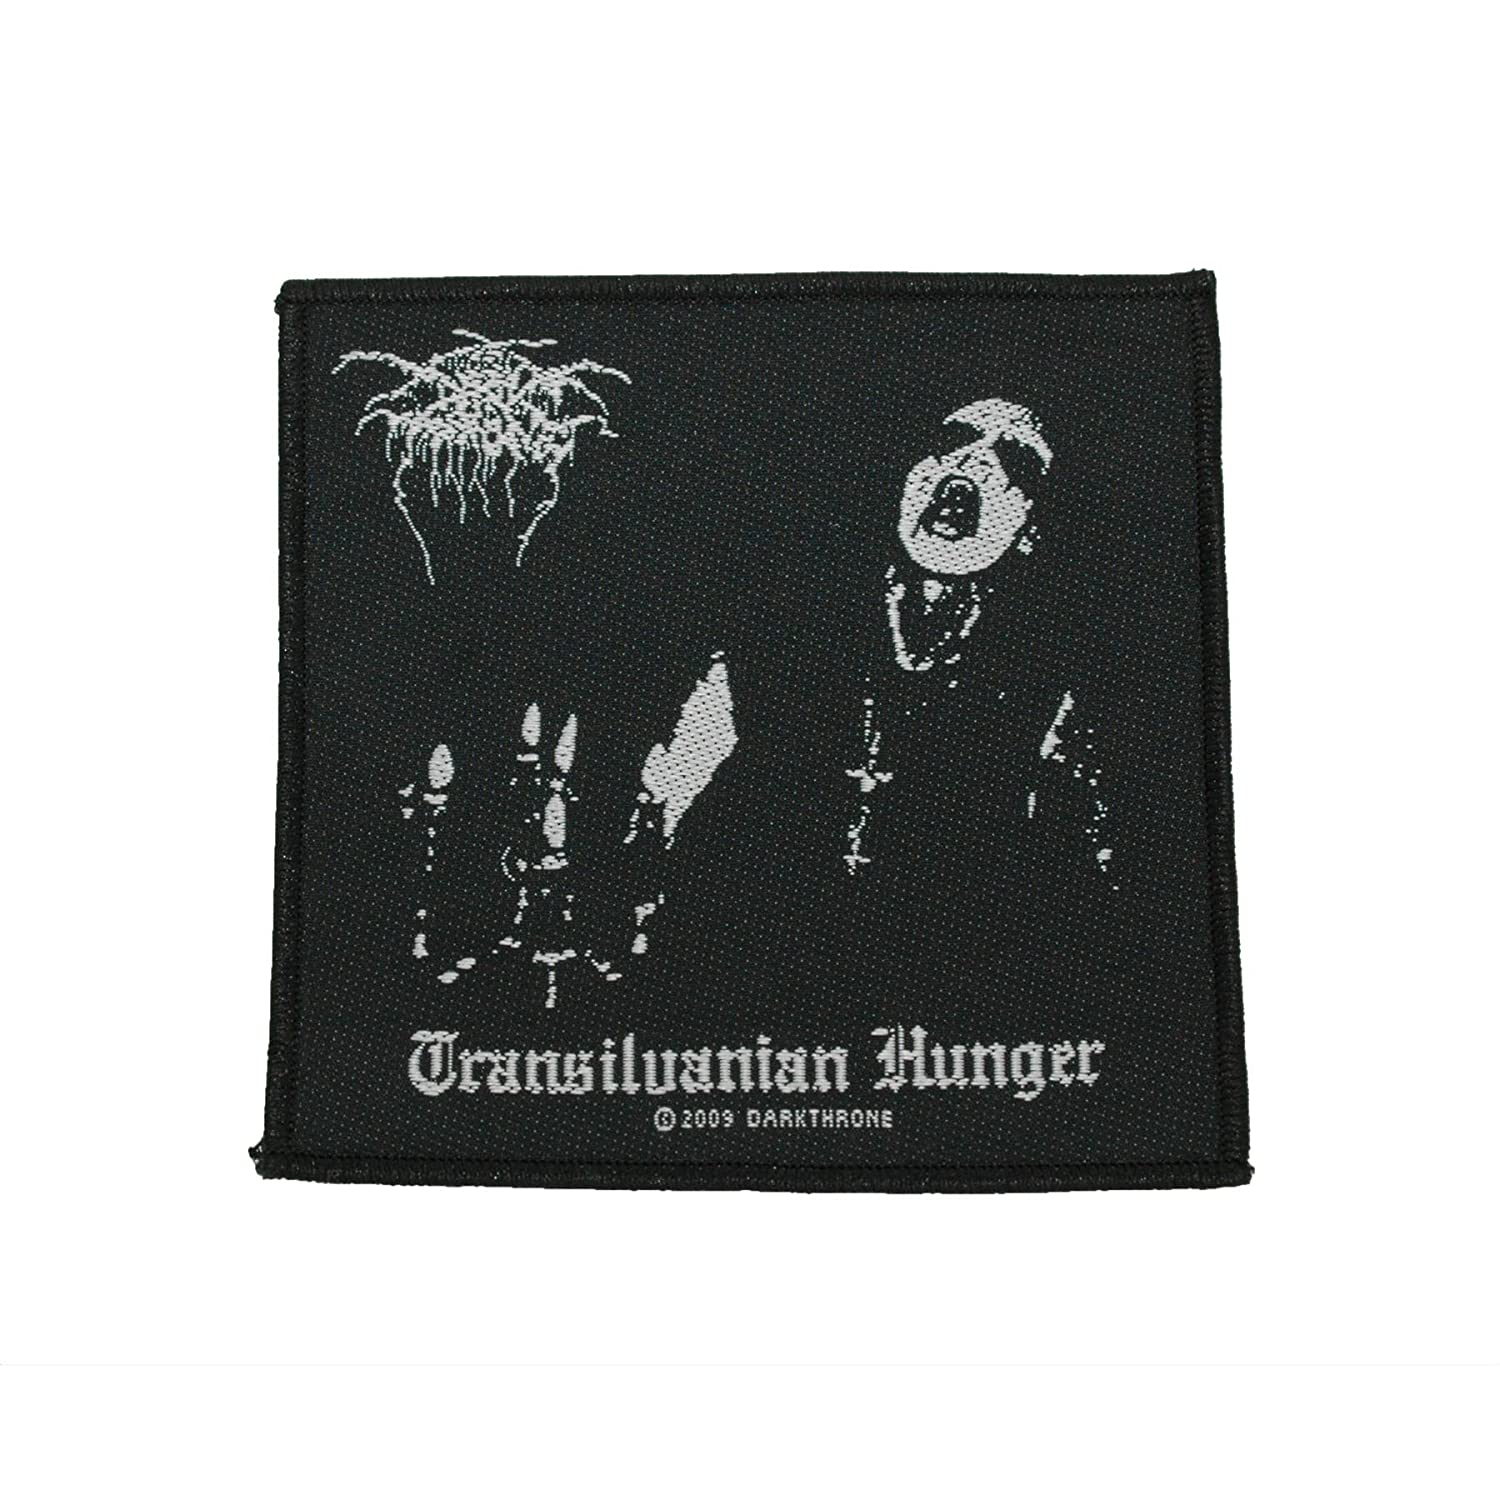 Darkthrone: Transilvanian Hunger Black Metal Band Woven Badge Applique Patch